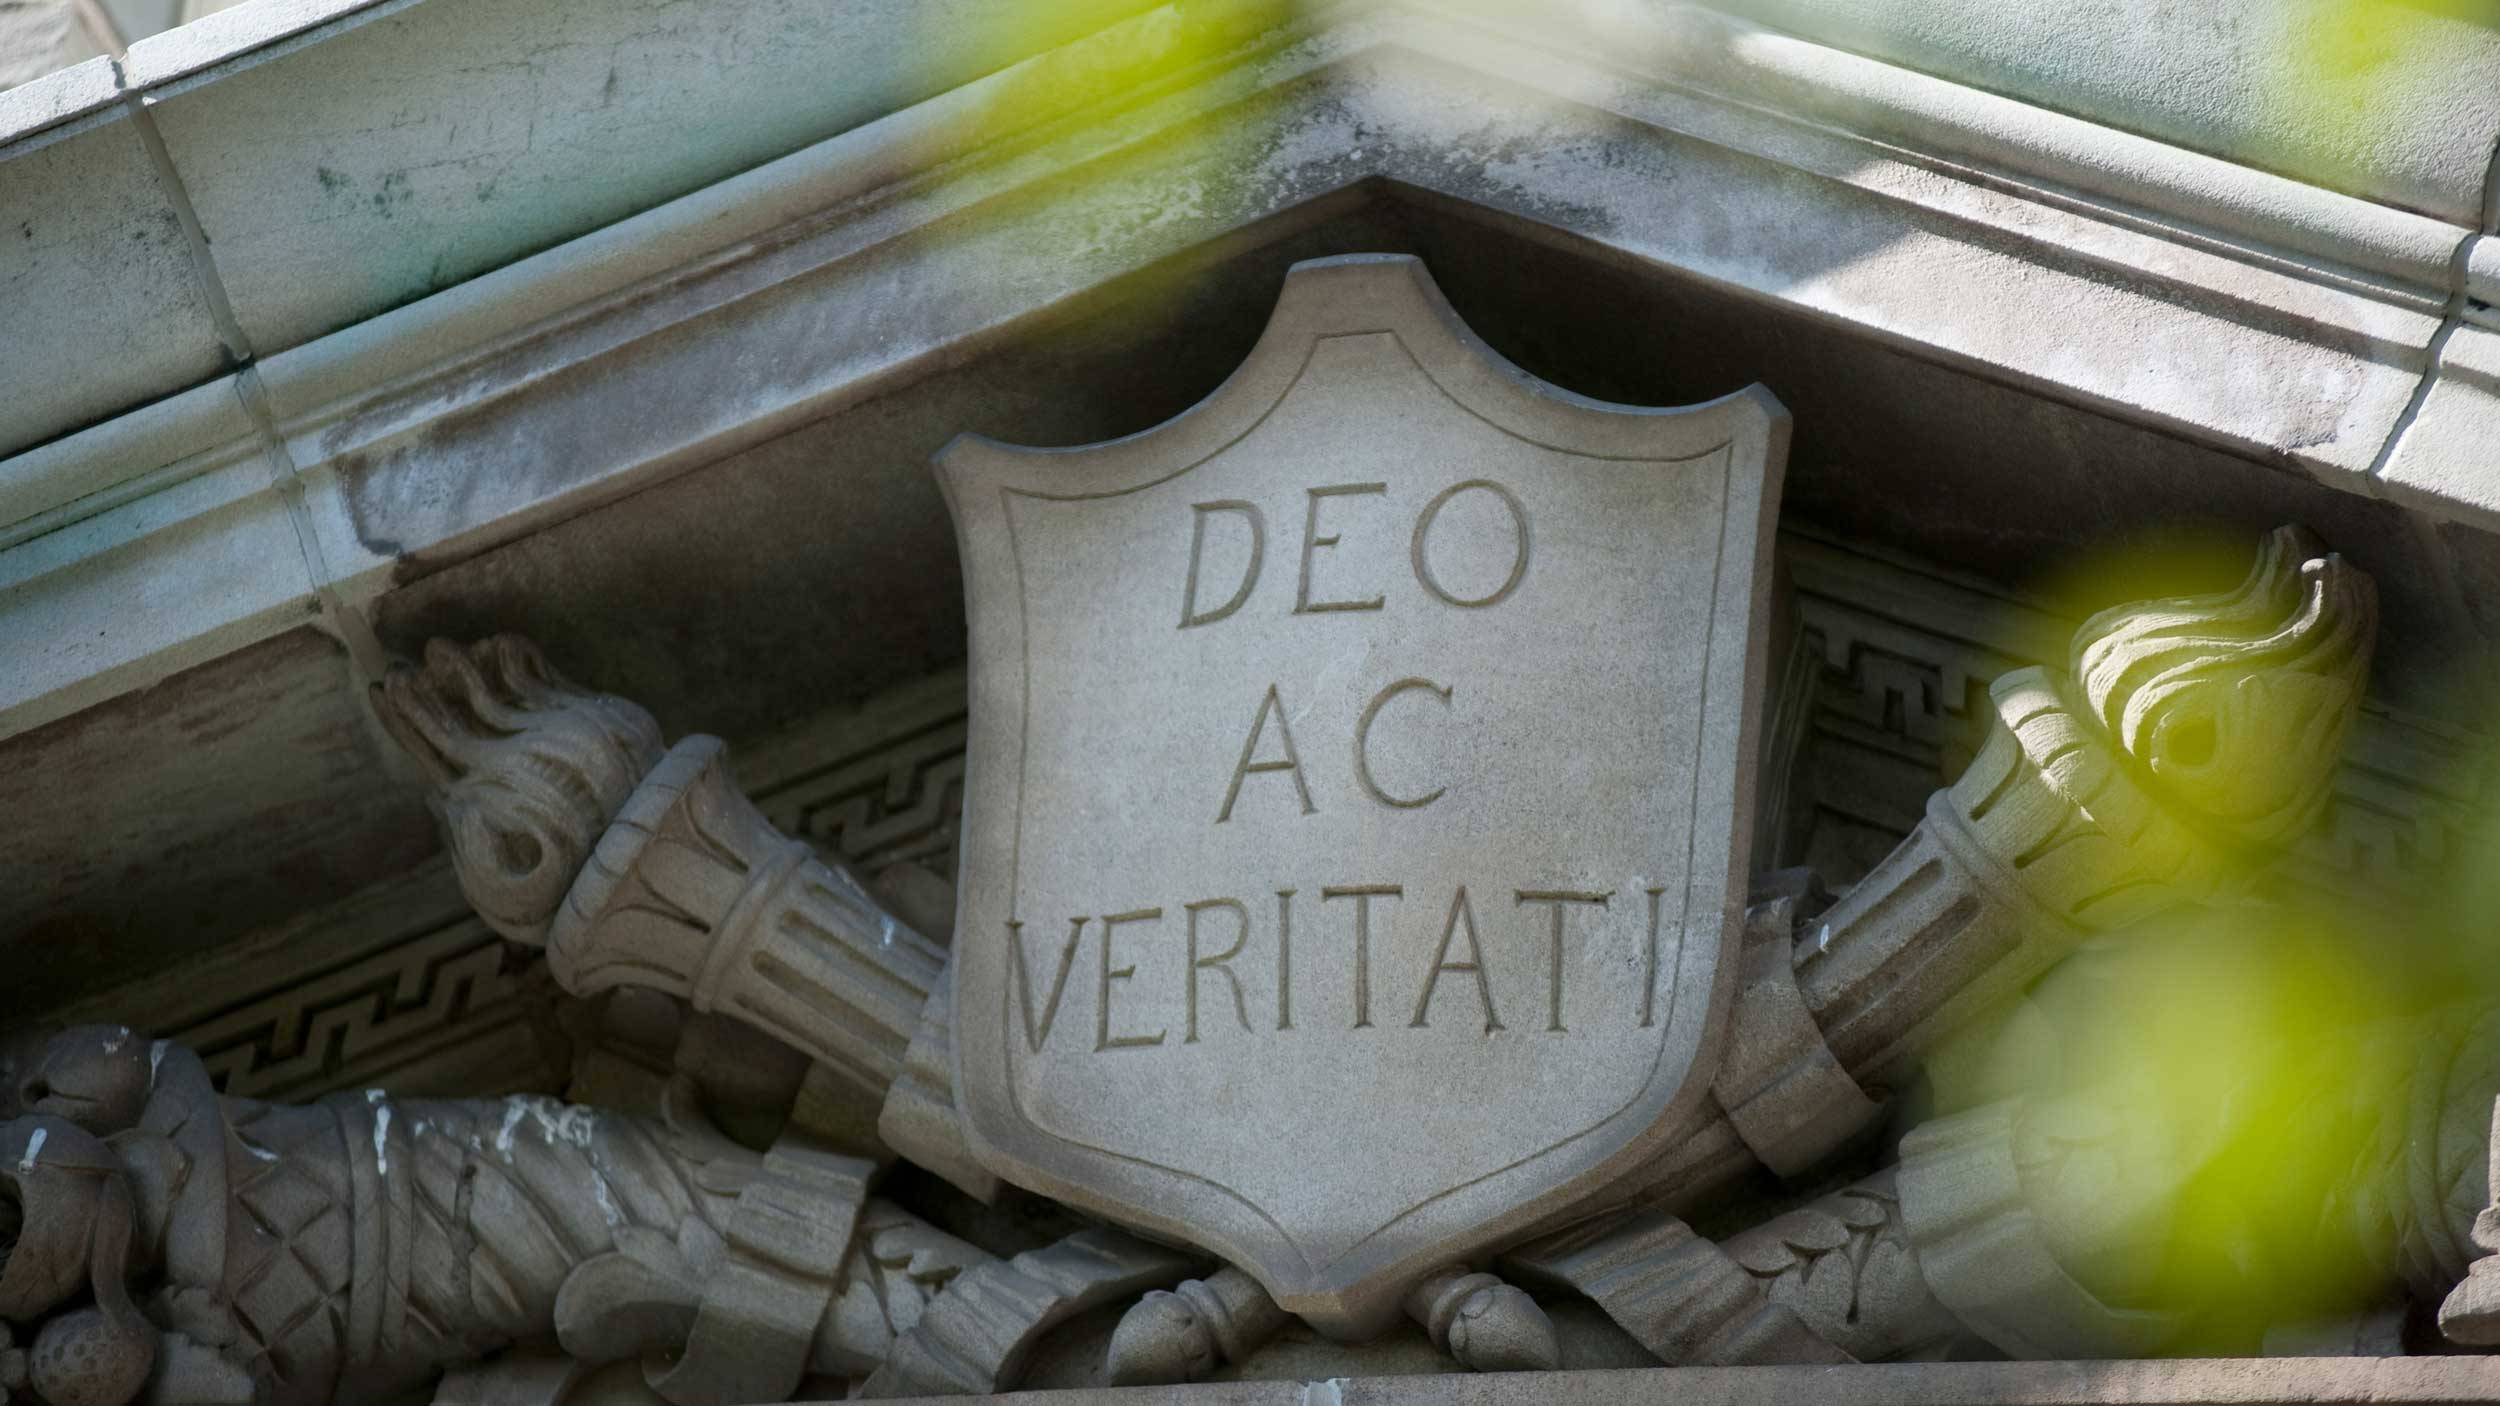 Deo Ac Veritati on shield